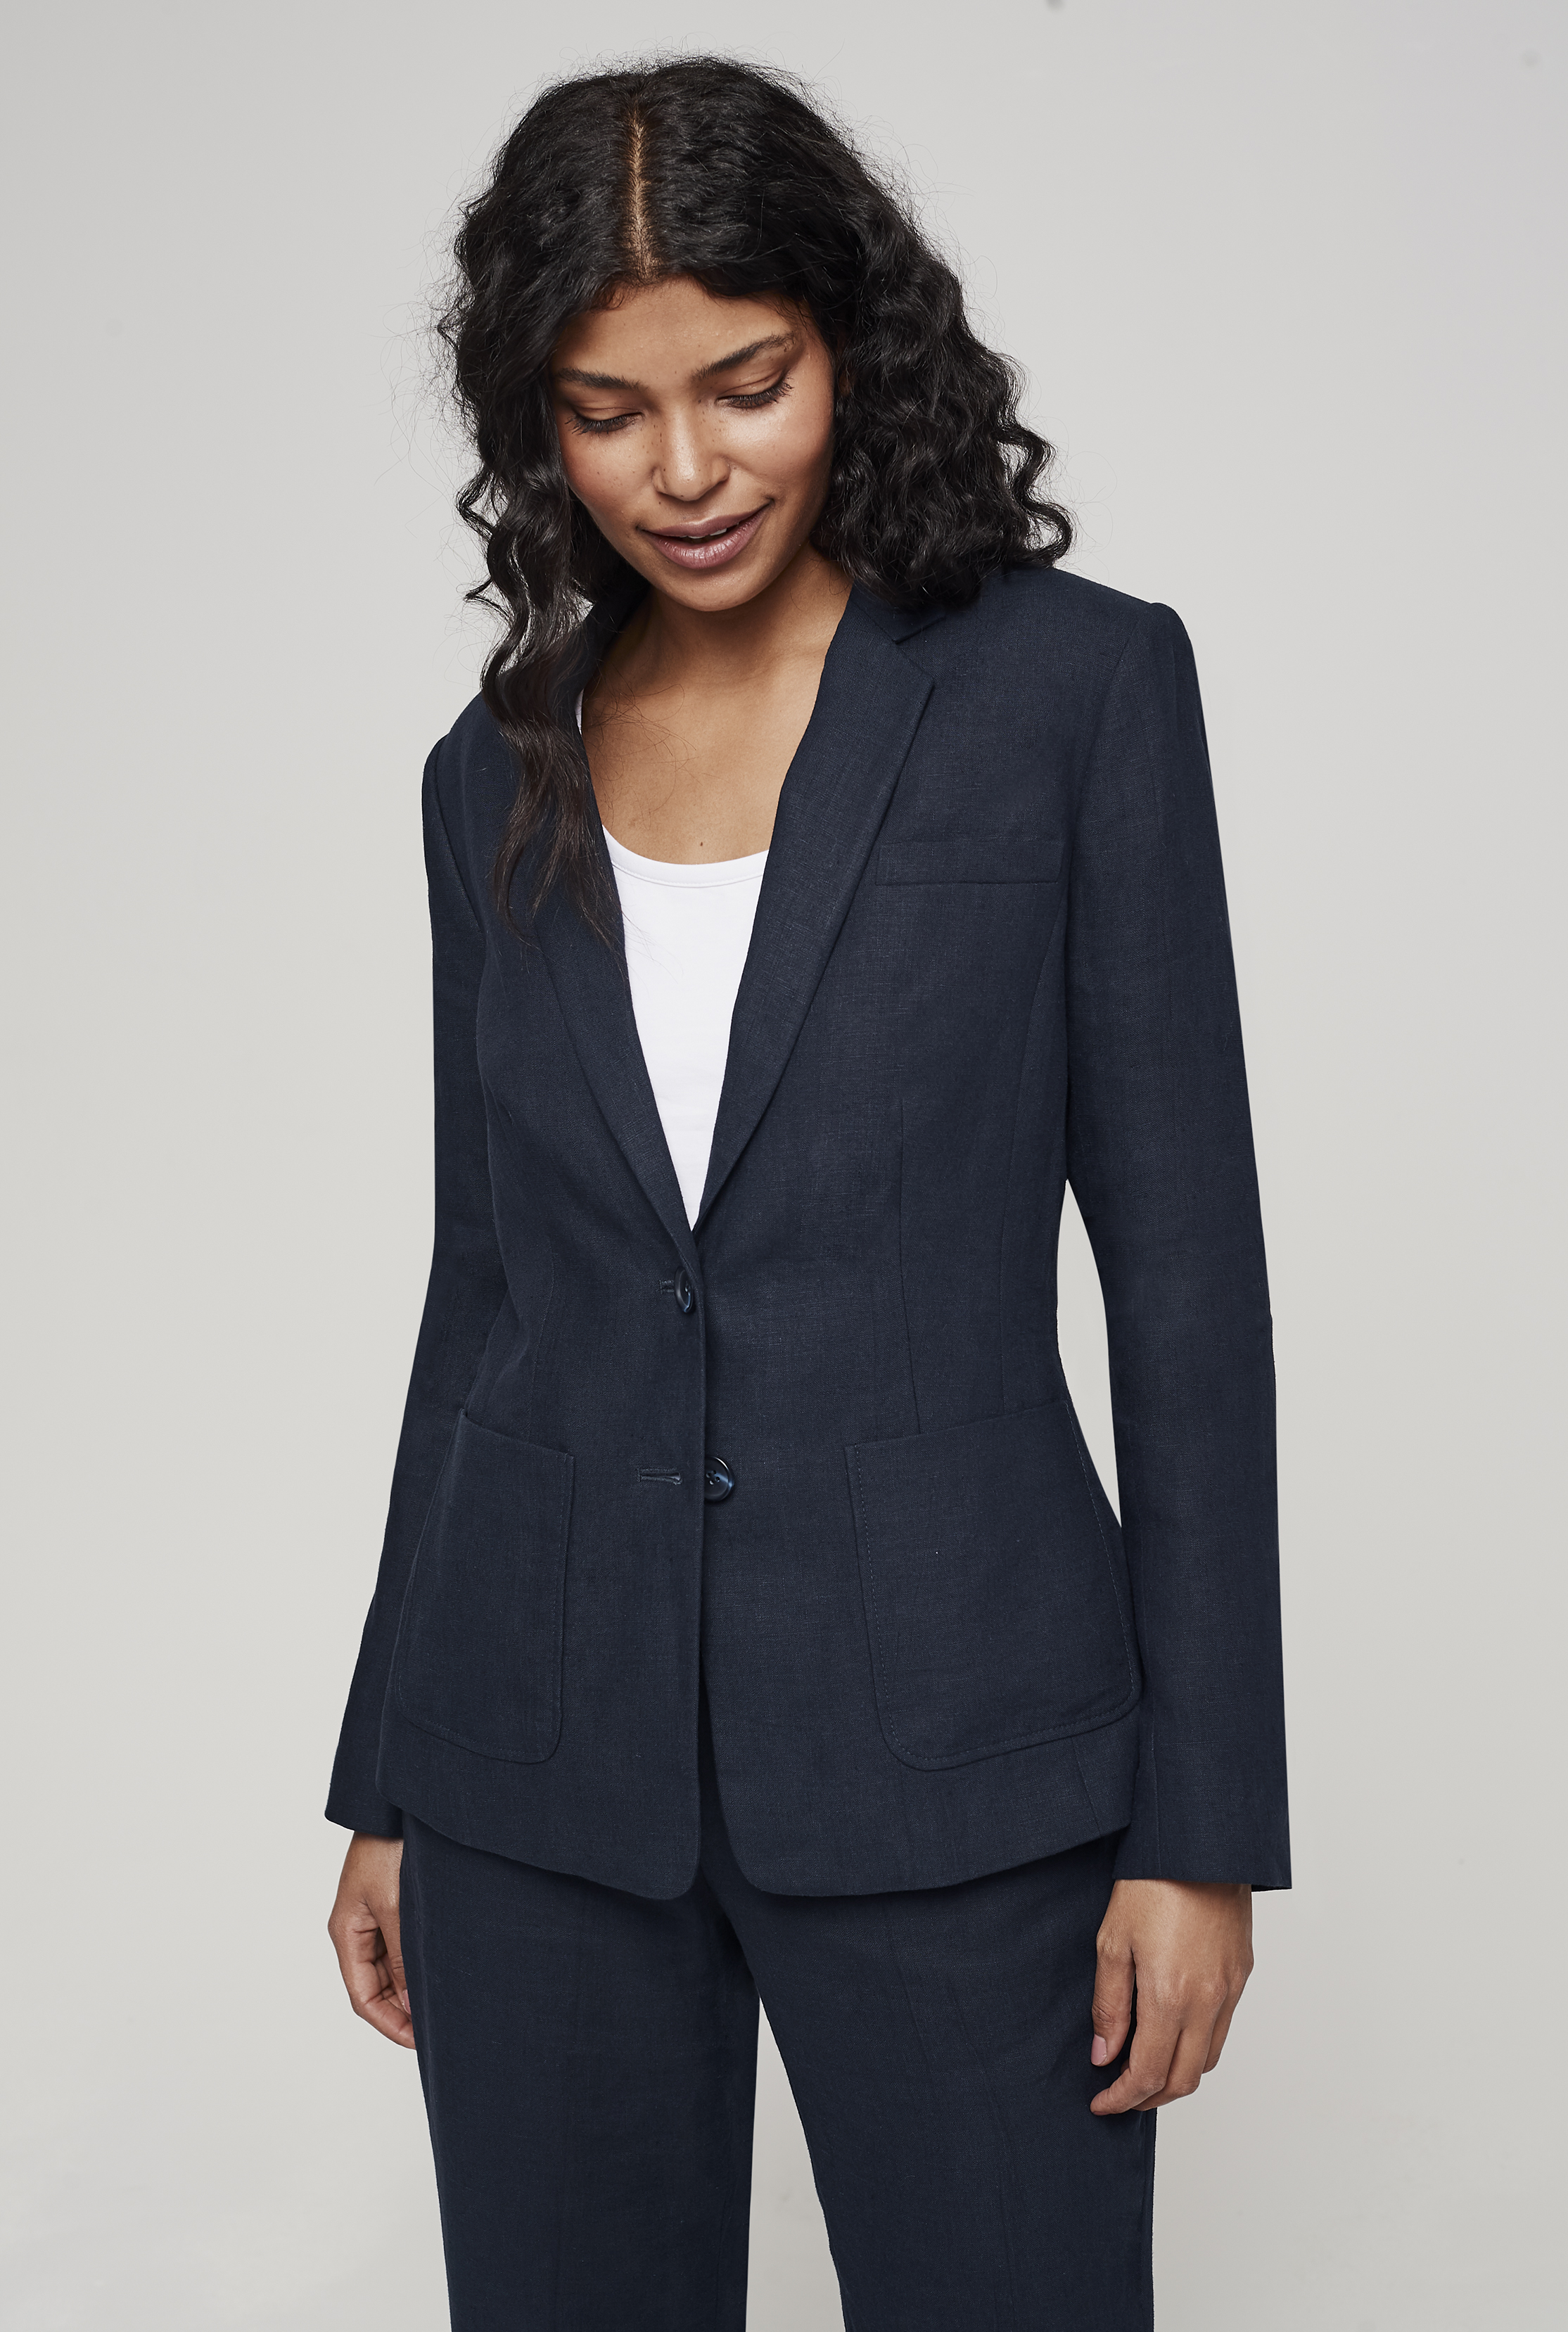 Navy Linen Suit Jacket